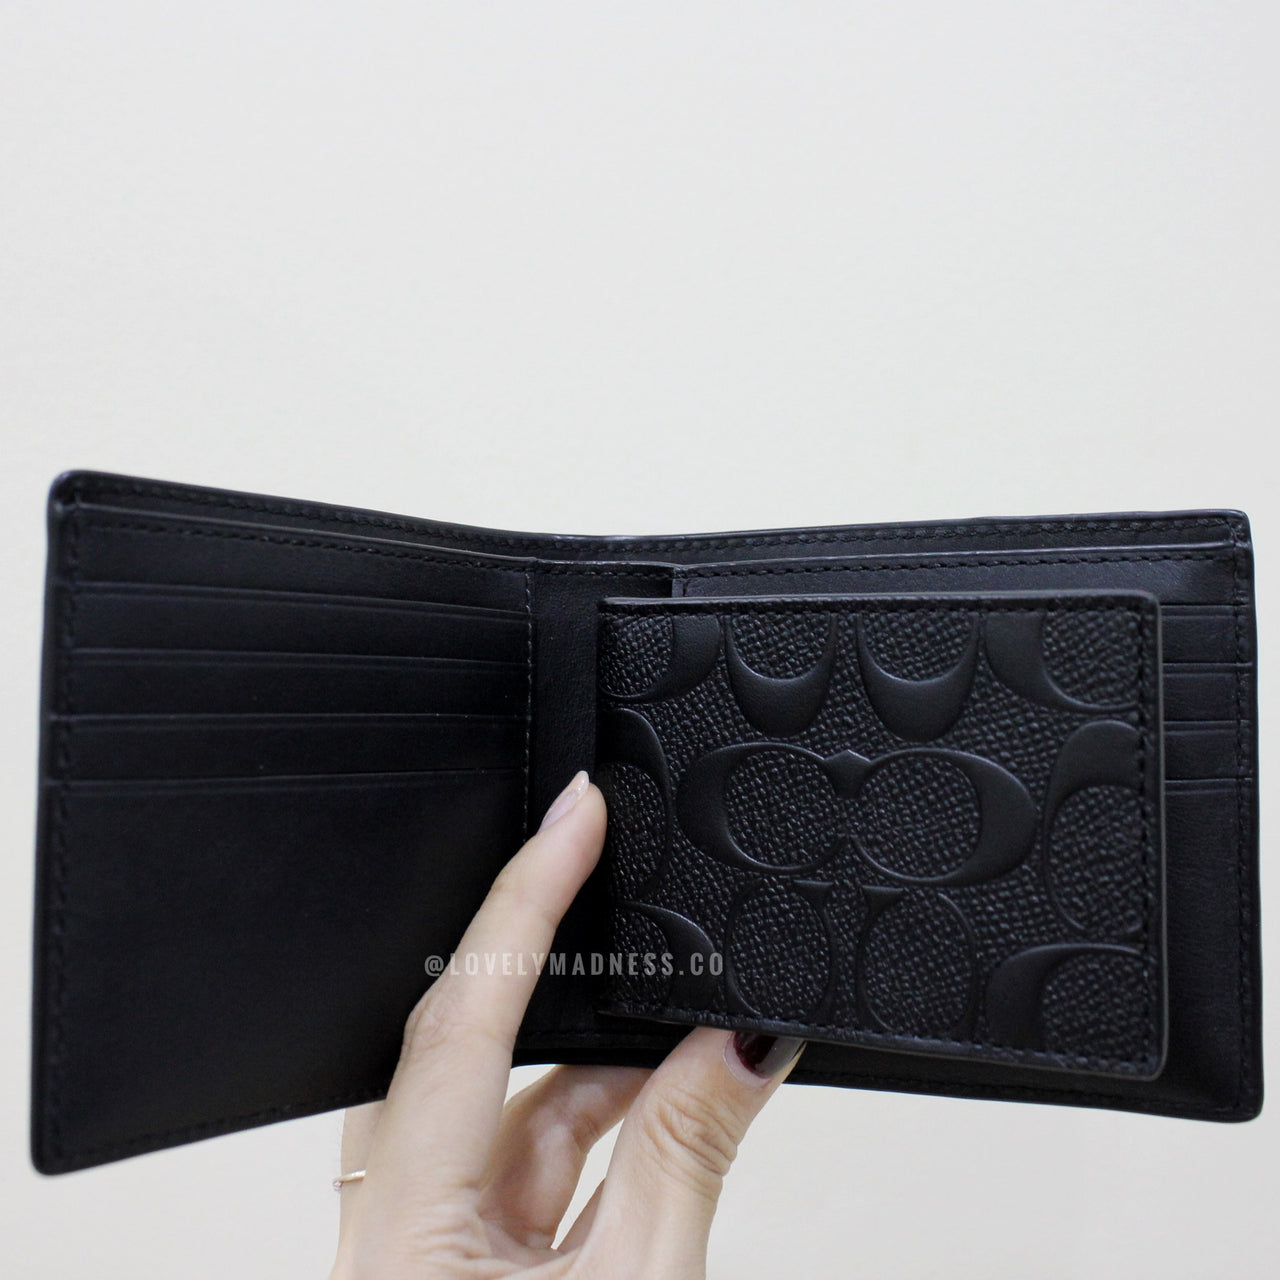 COACH COMPACT ID WALLET IN SIGNATURE CROSSGRAIN LEATHER - LovelyMadness Clothing Online Fashion Malaysia